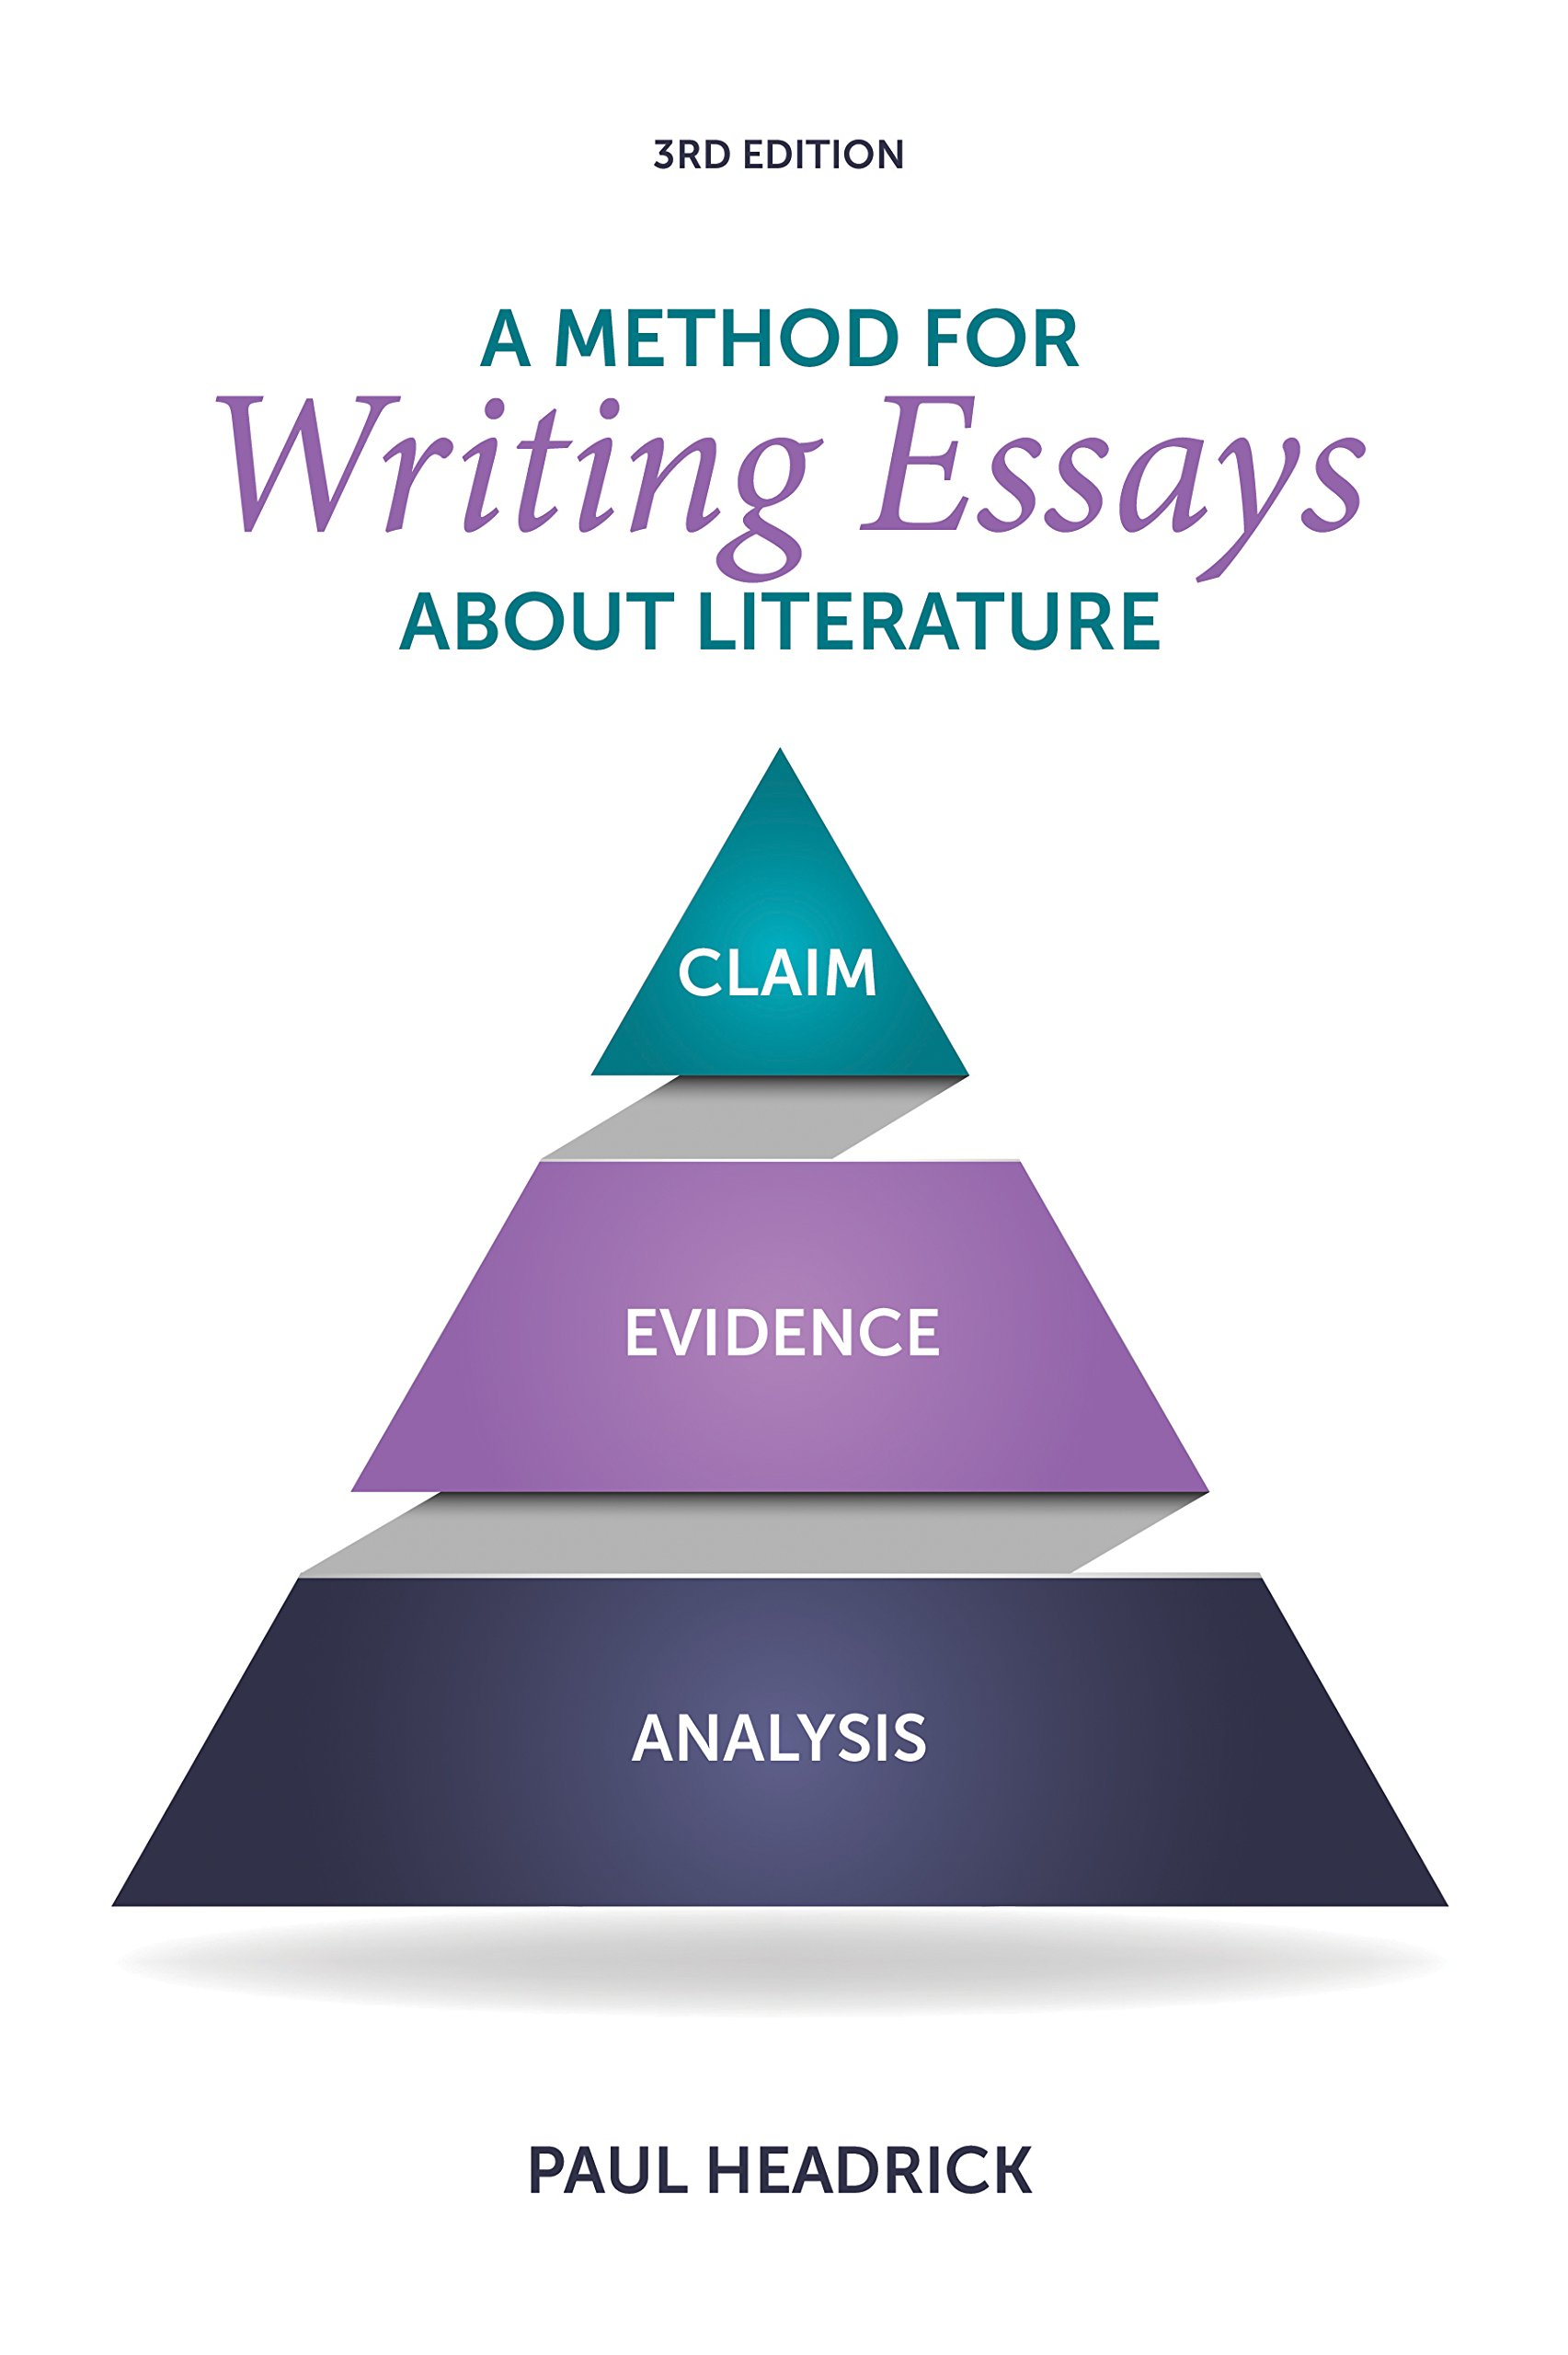 Buy custom written essays